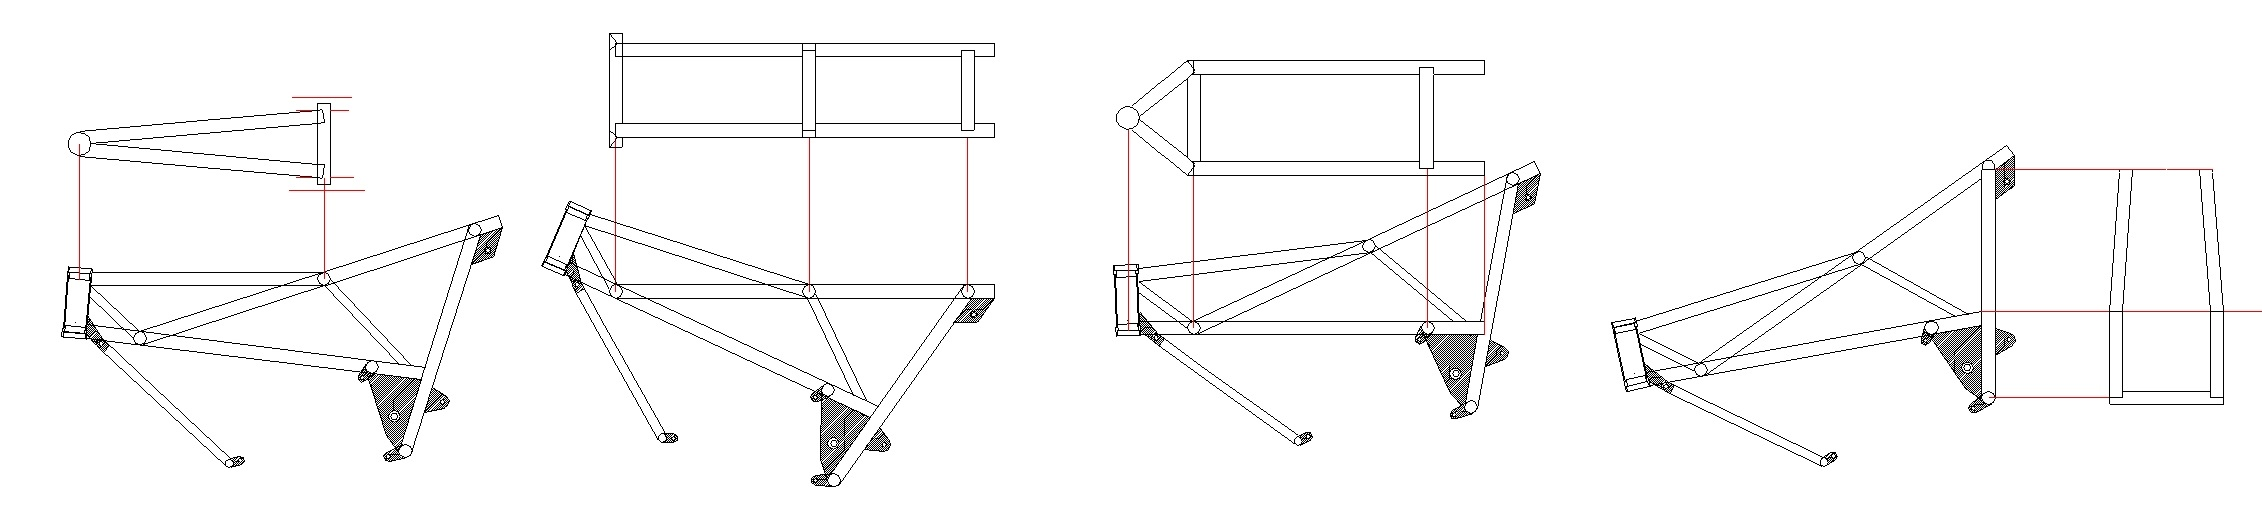 Highwayman F37 chassis projections